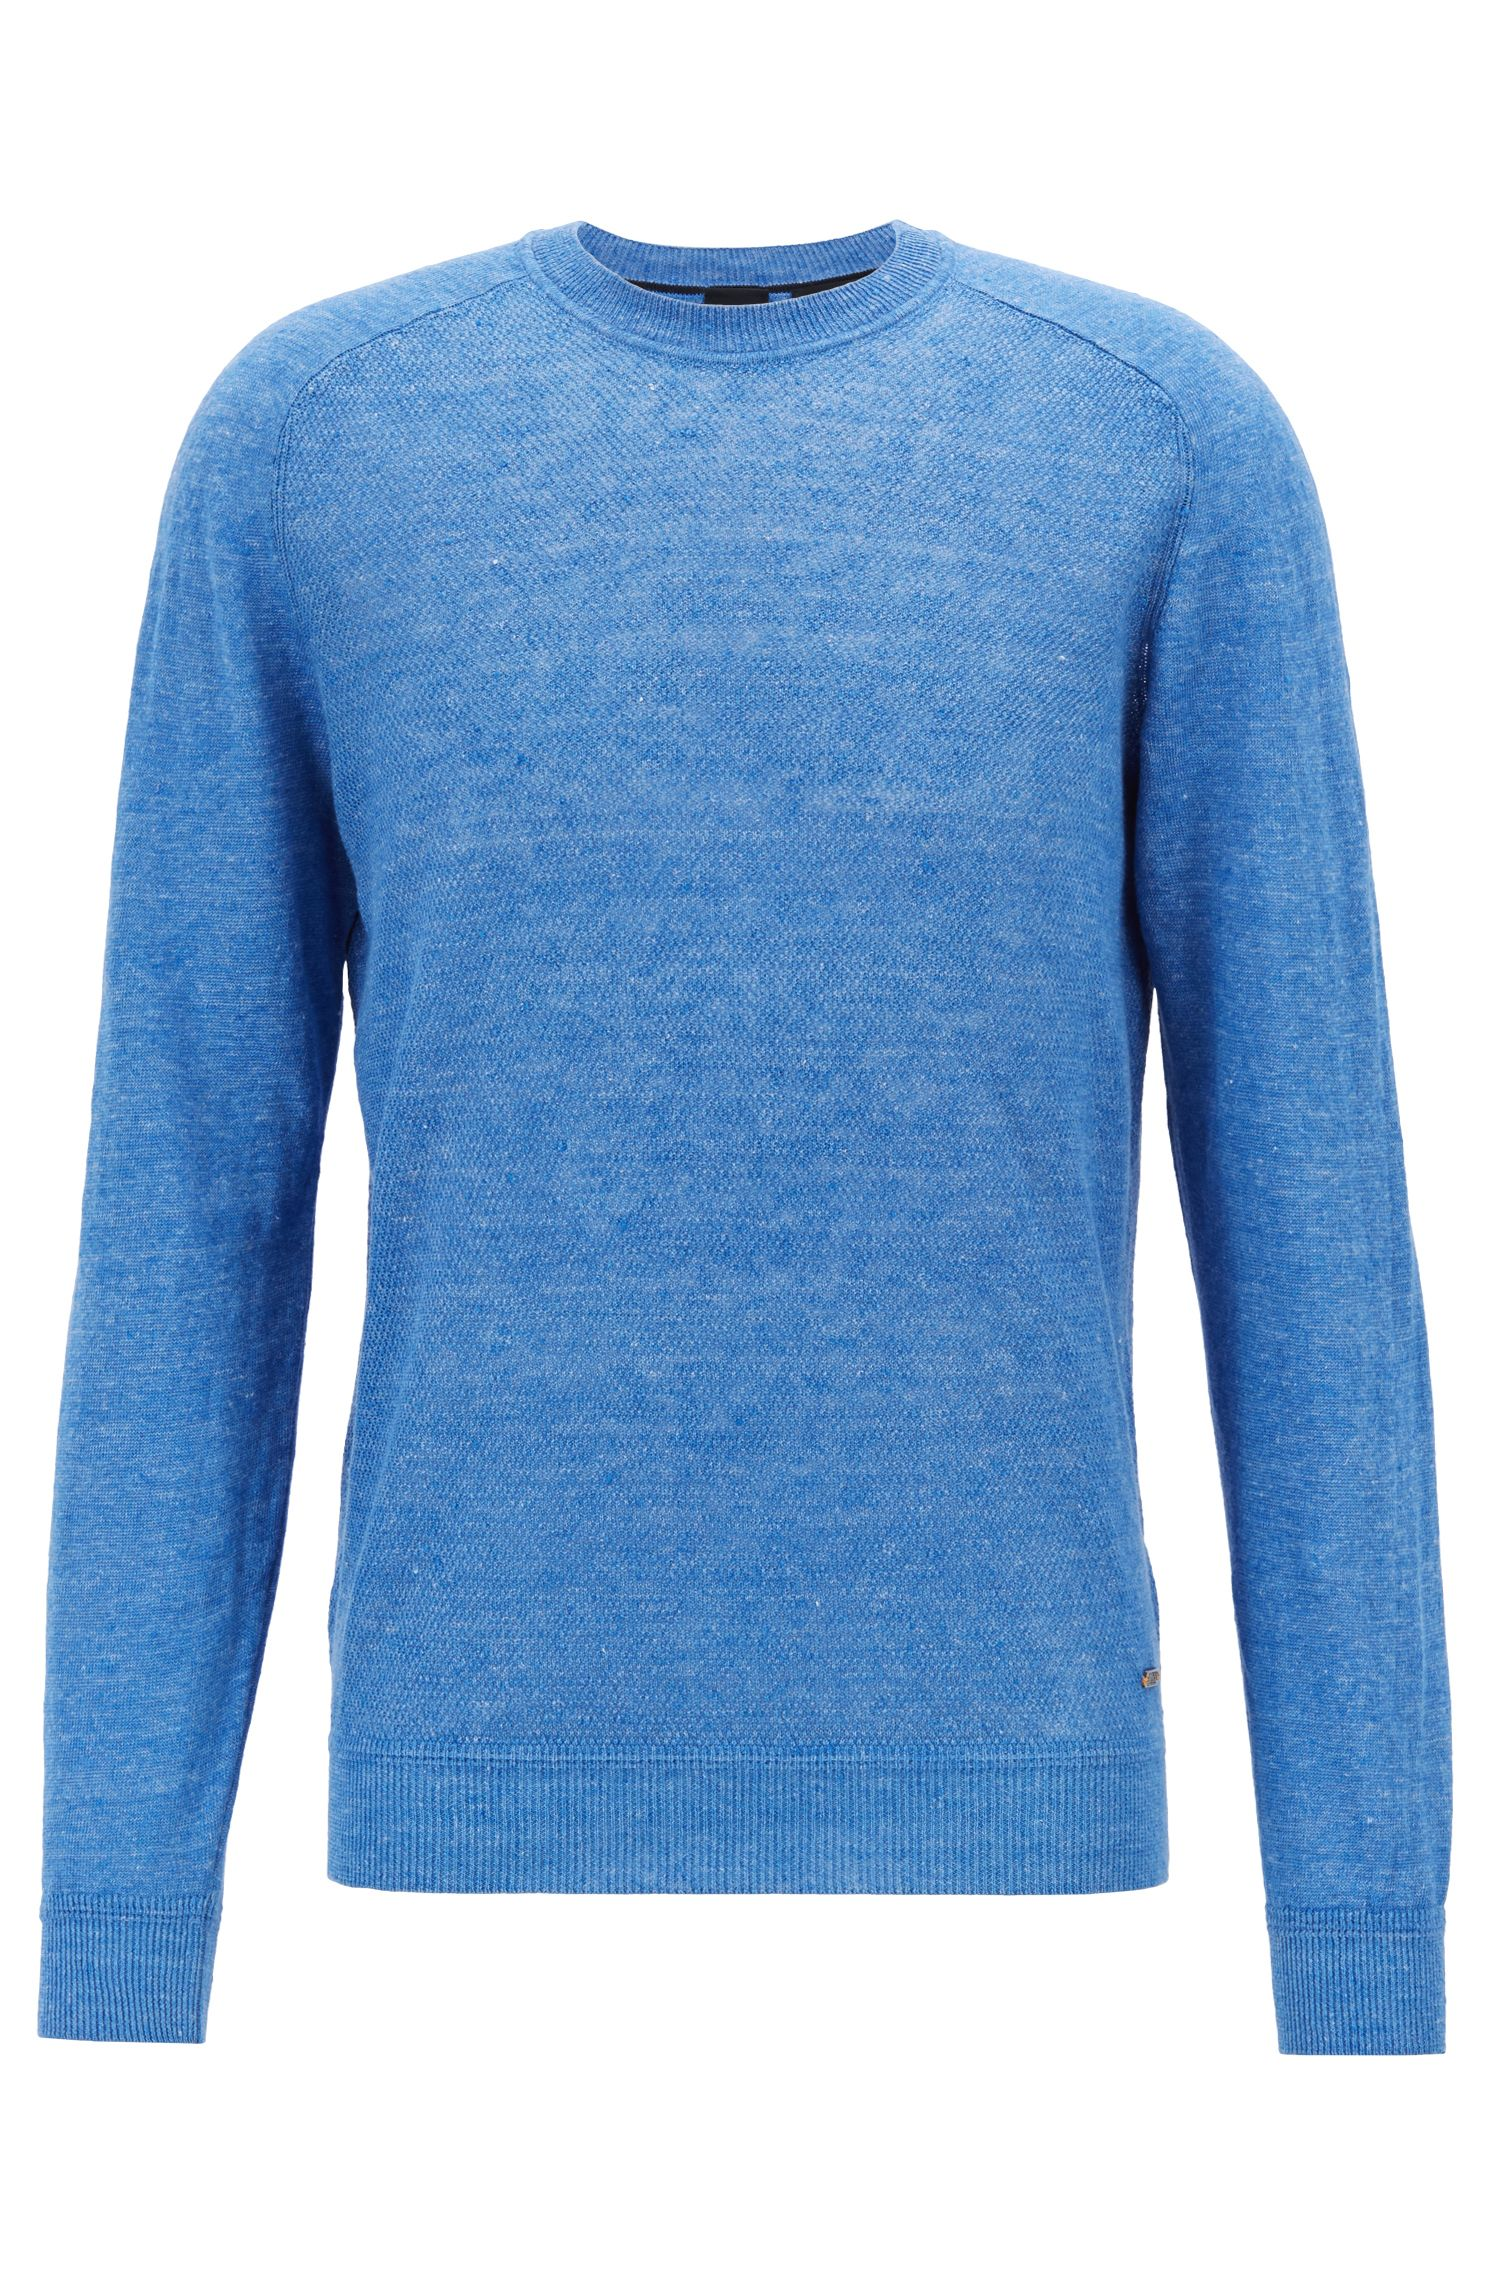 Micro-structured sweater in melange linen with ottoman detailing, Light Blue